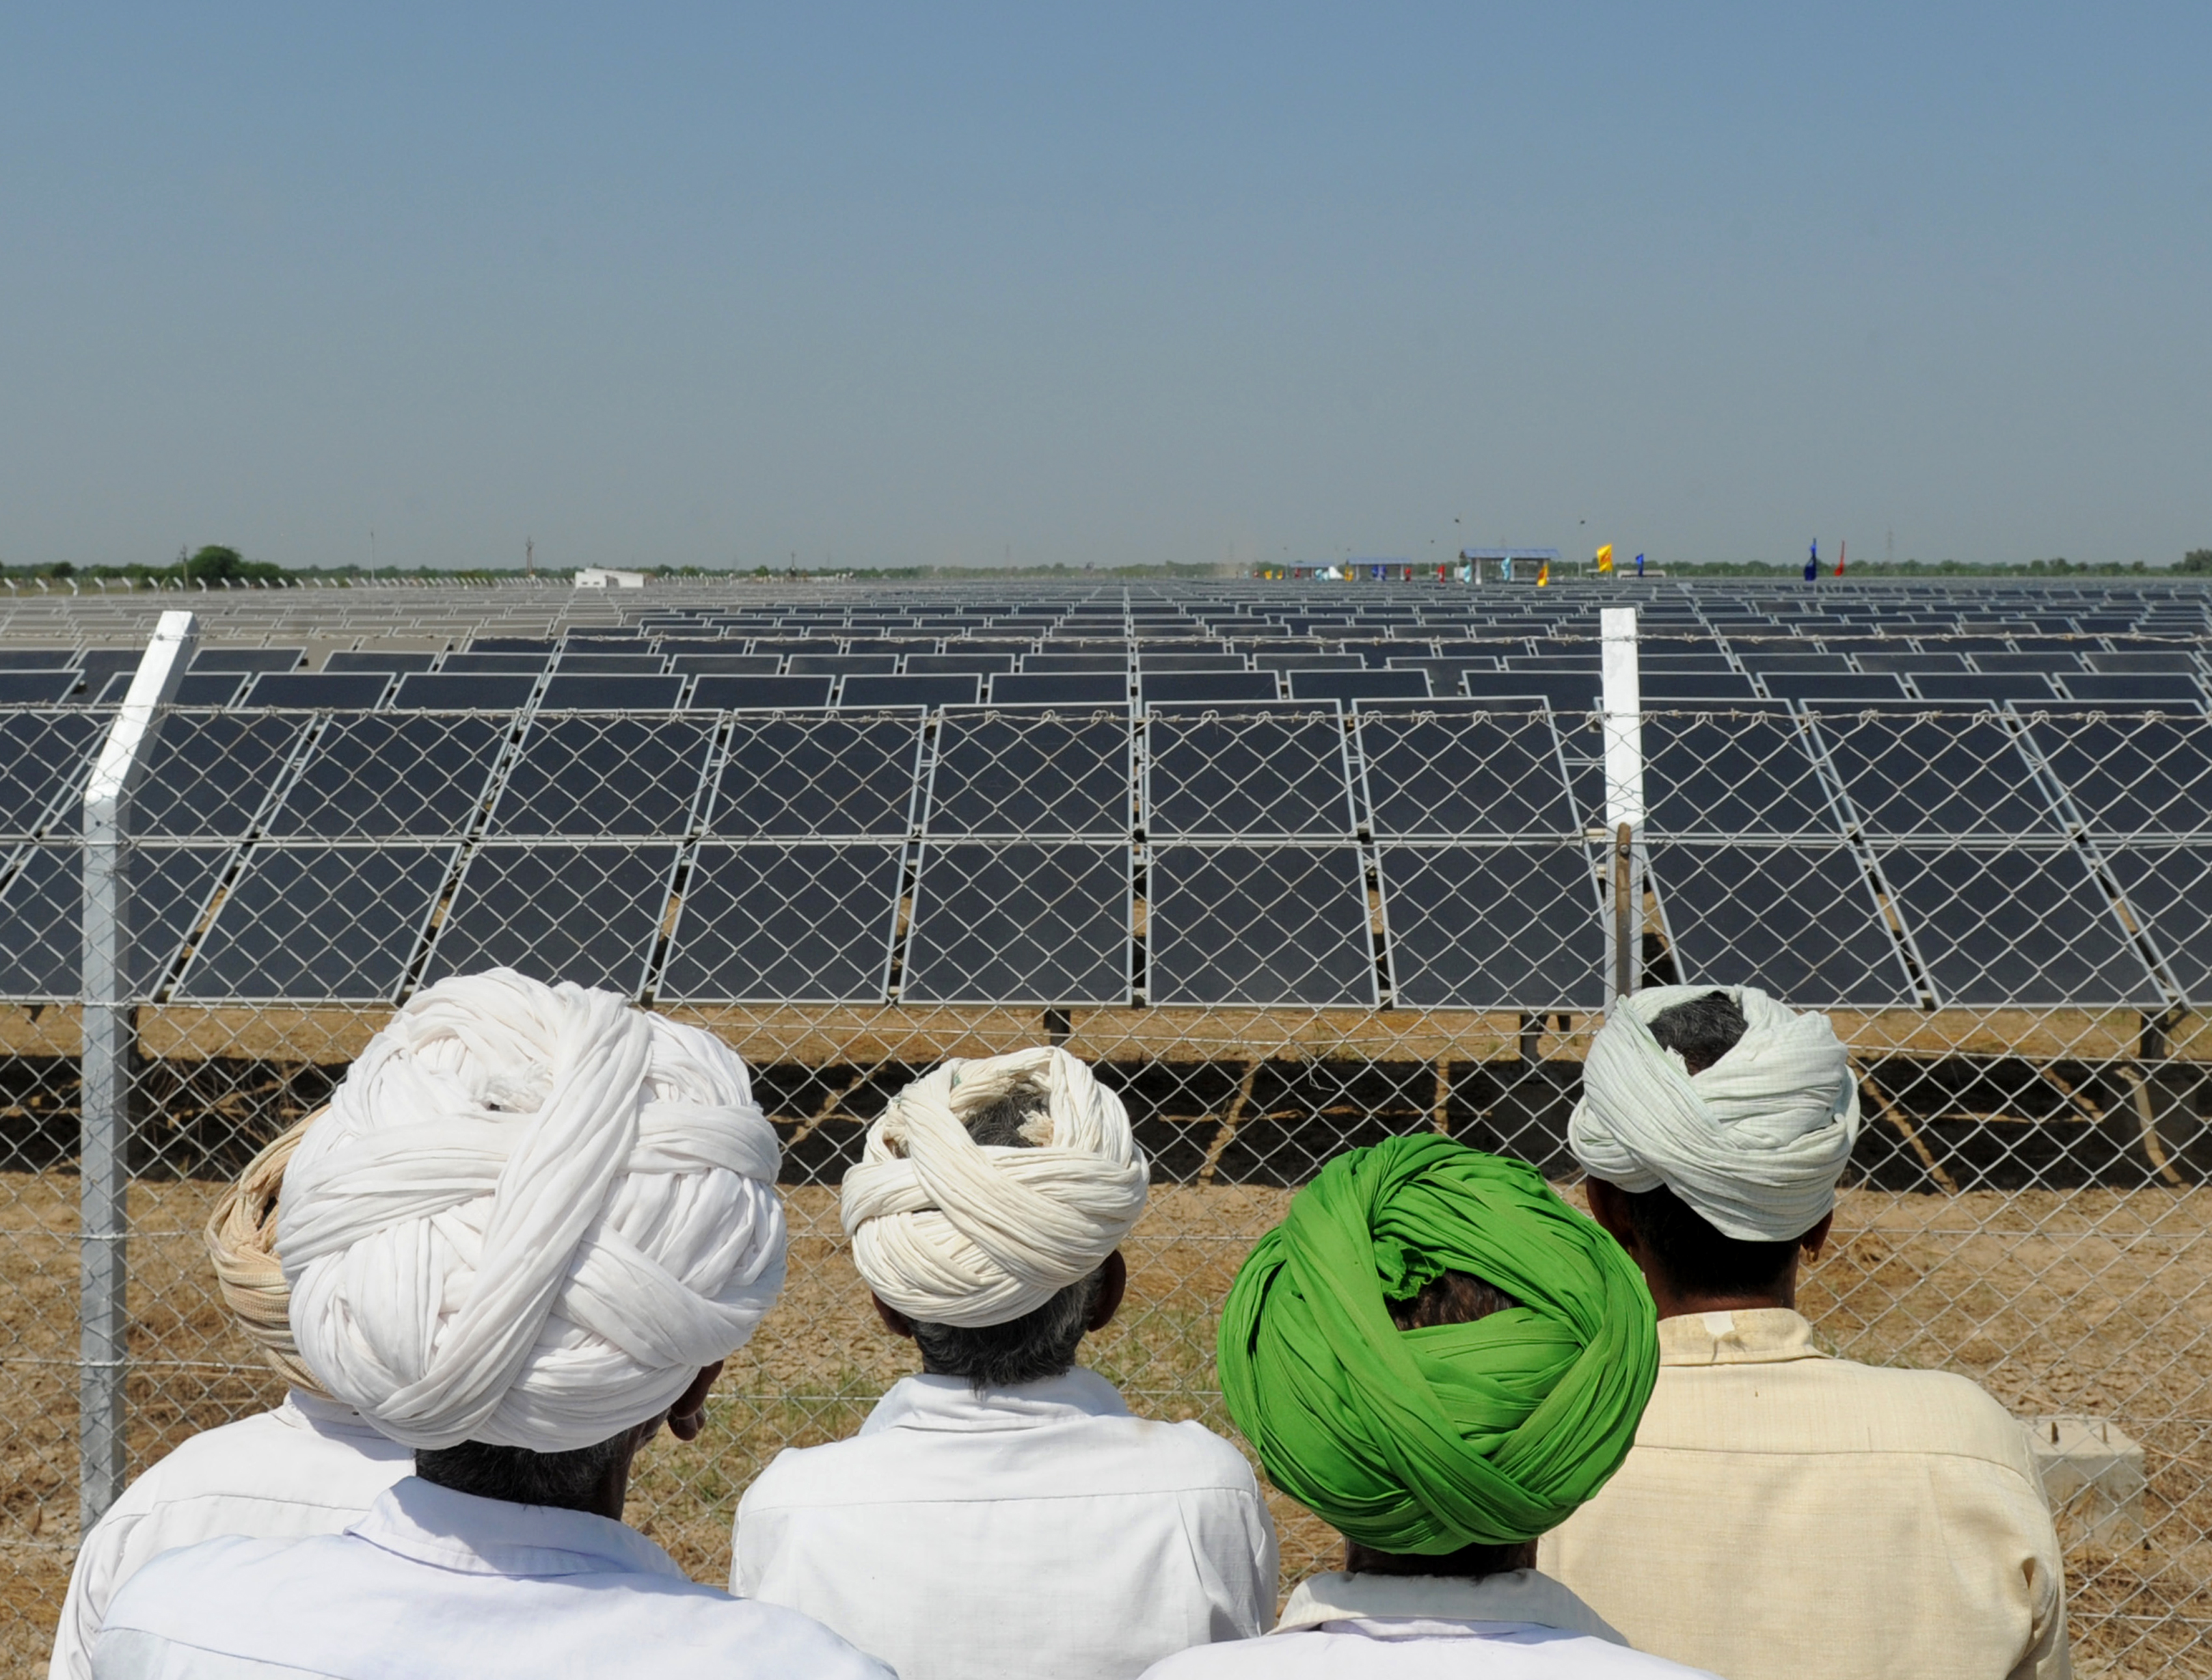 Solar power is booming in India. Will it reach the people who need it most?